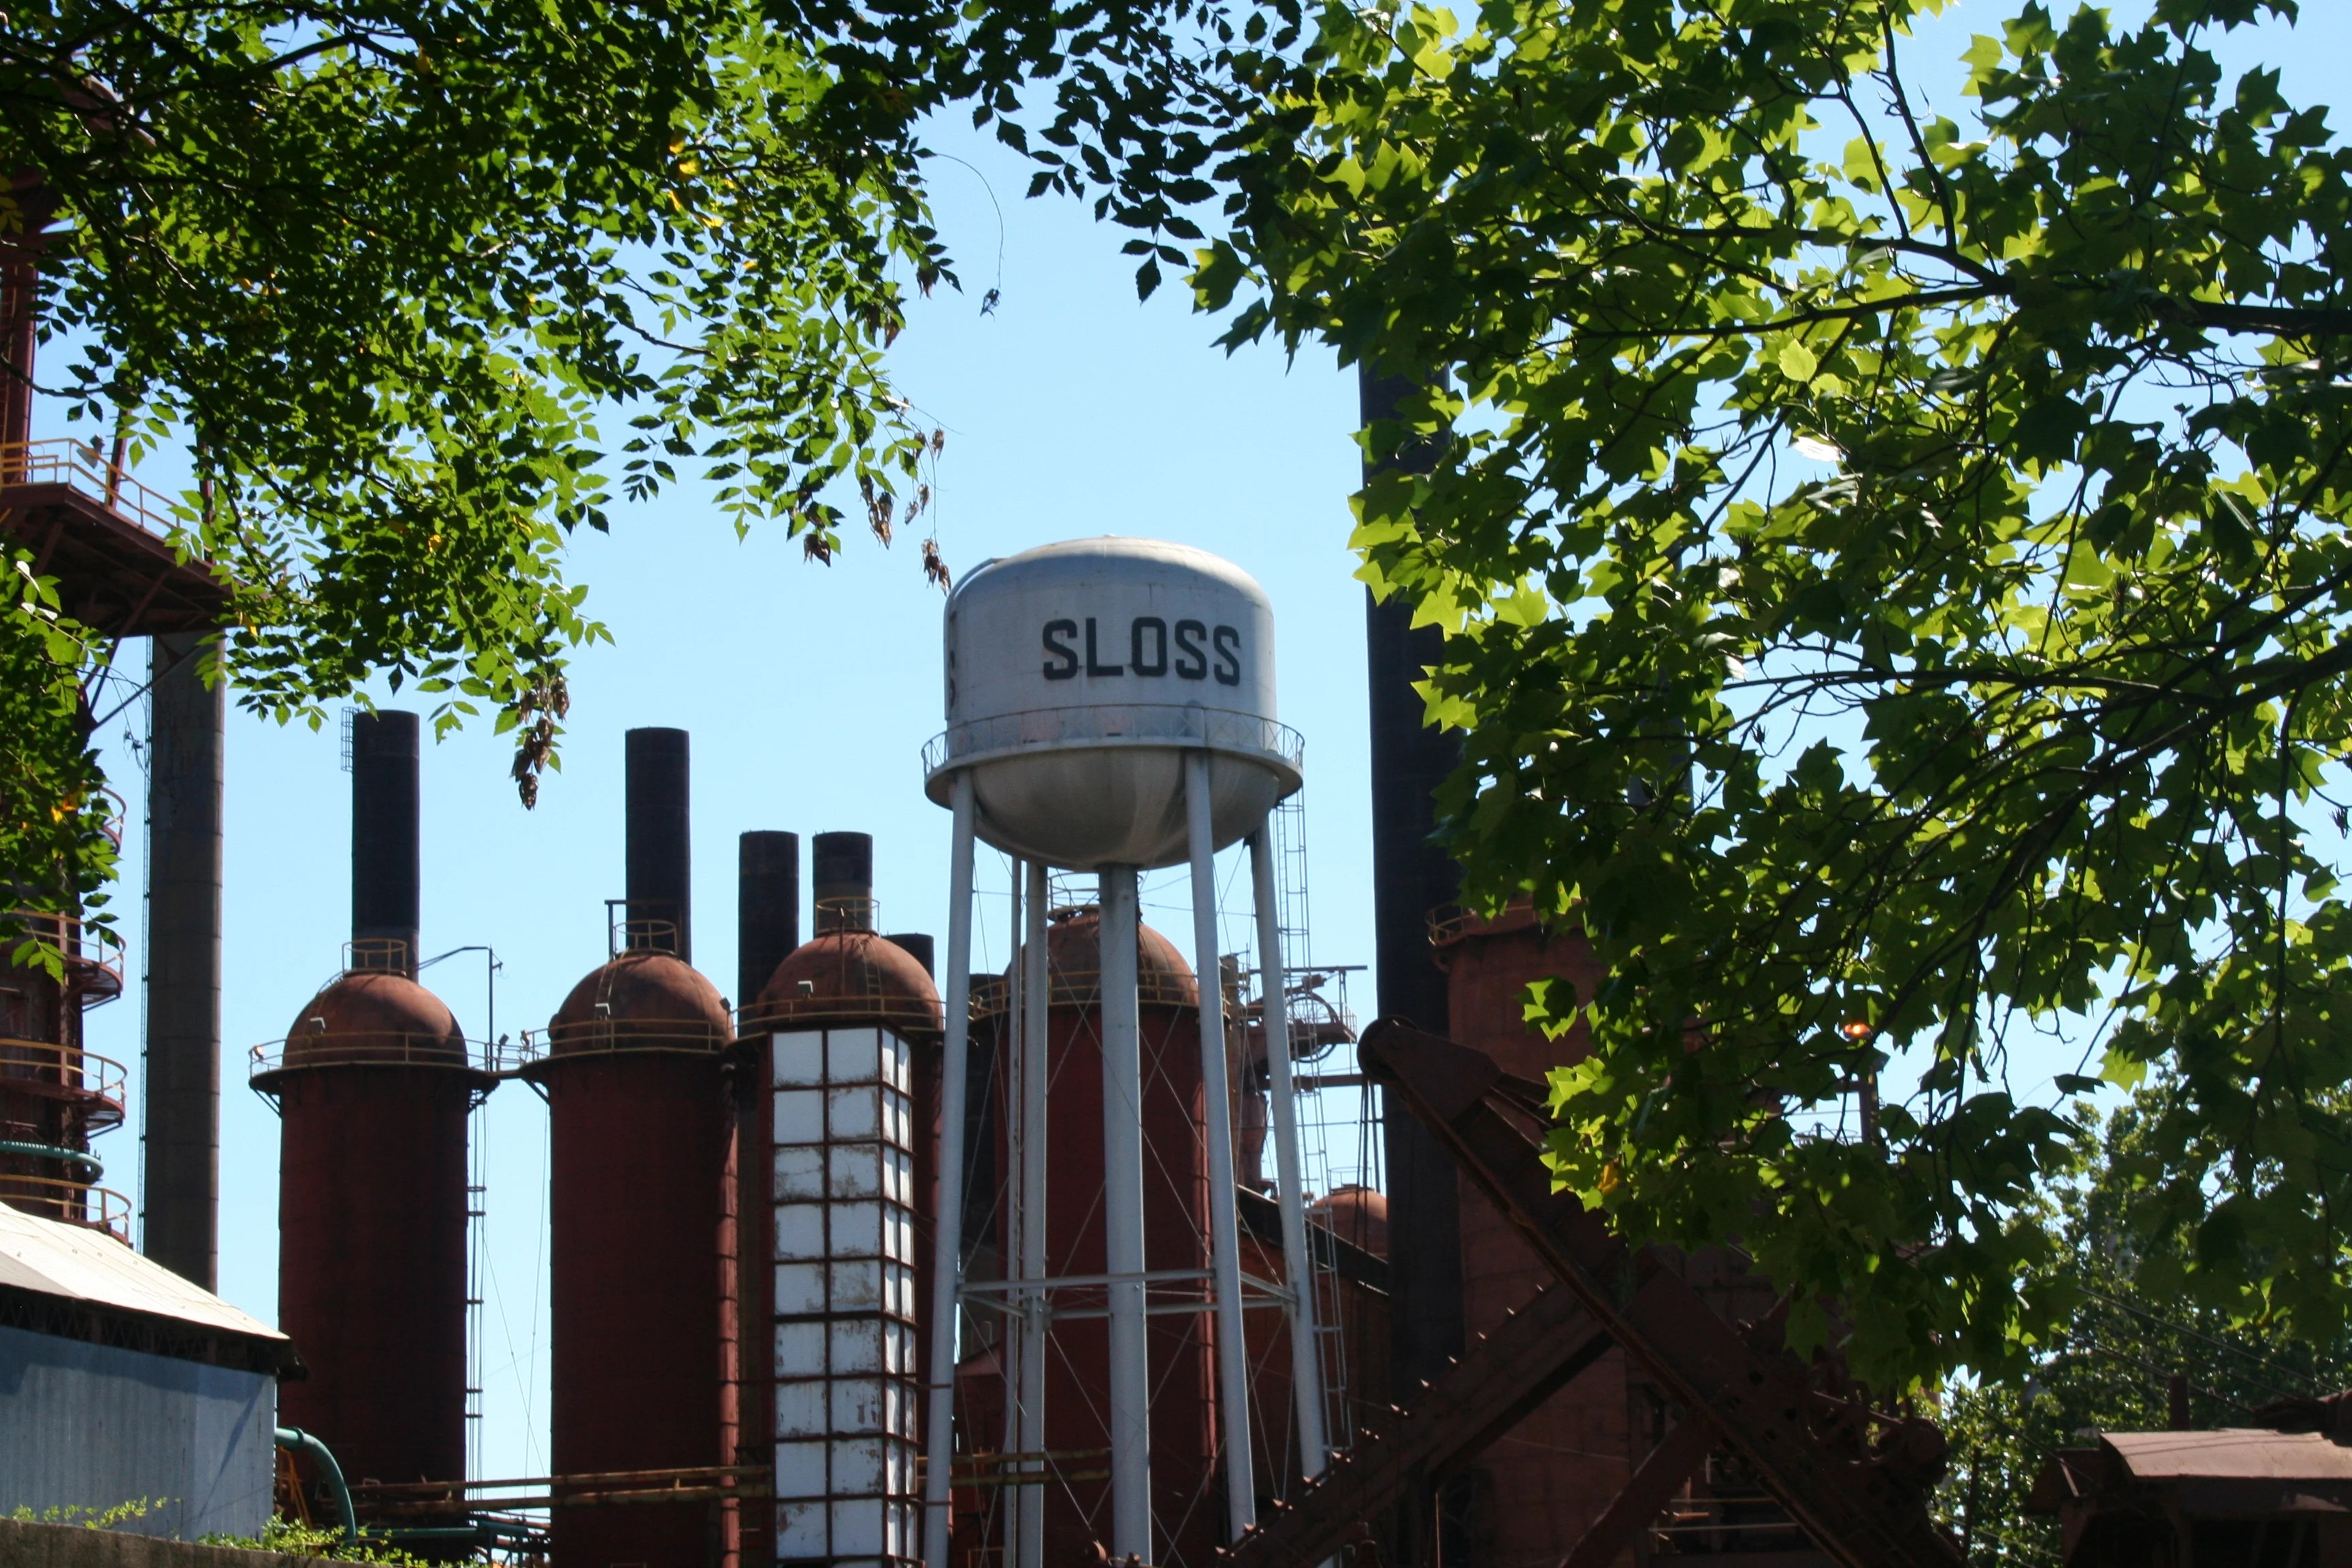 Sloss Furnaces Birmingham Alabama